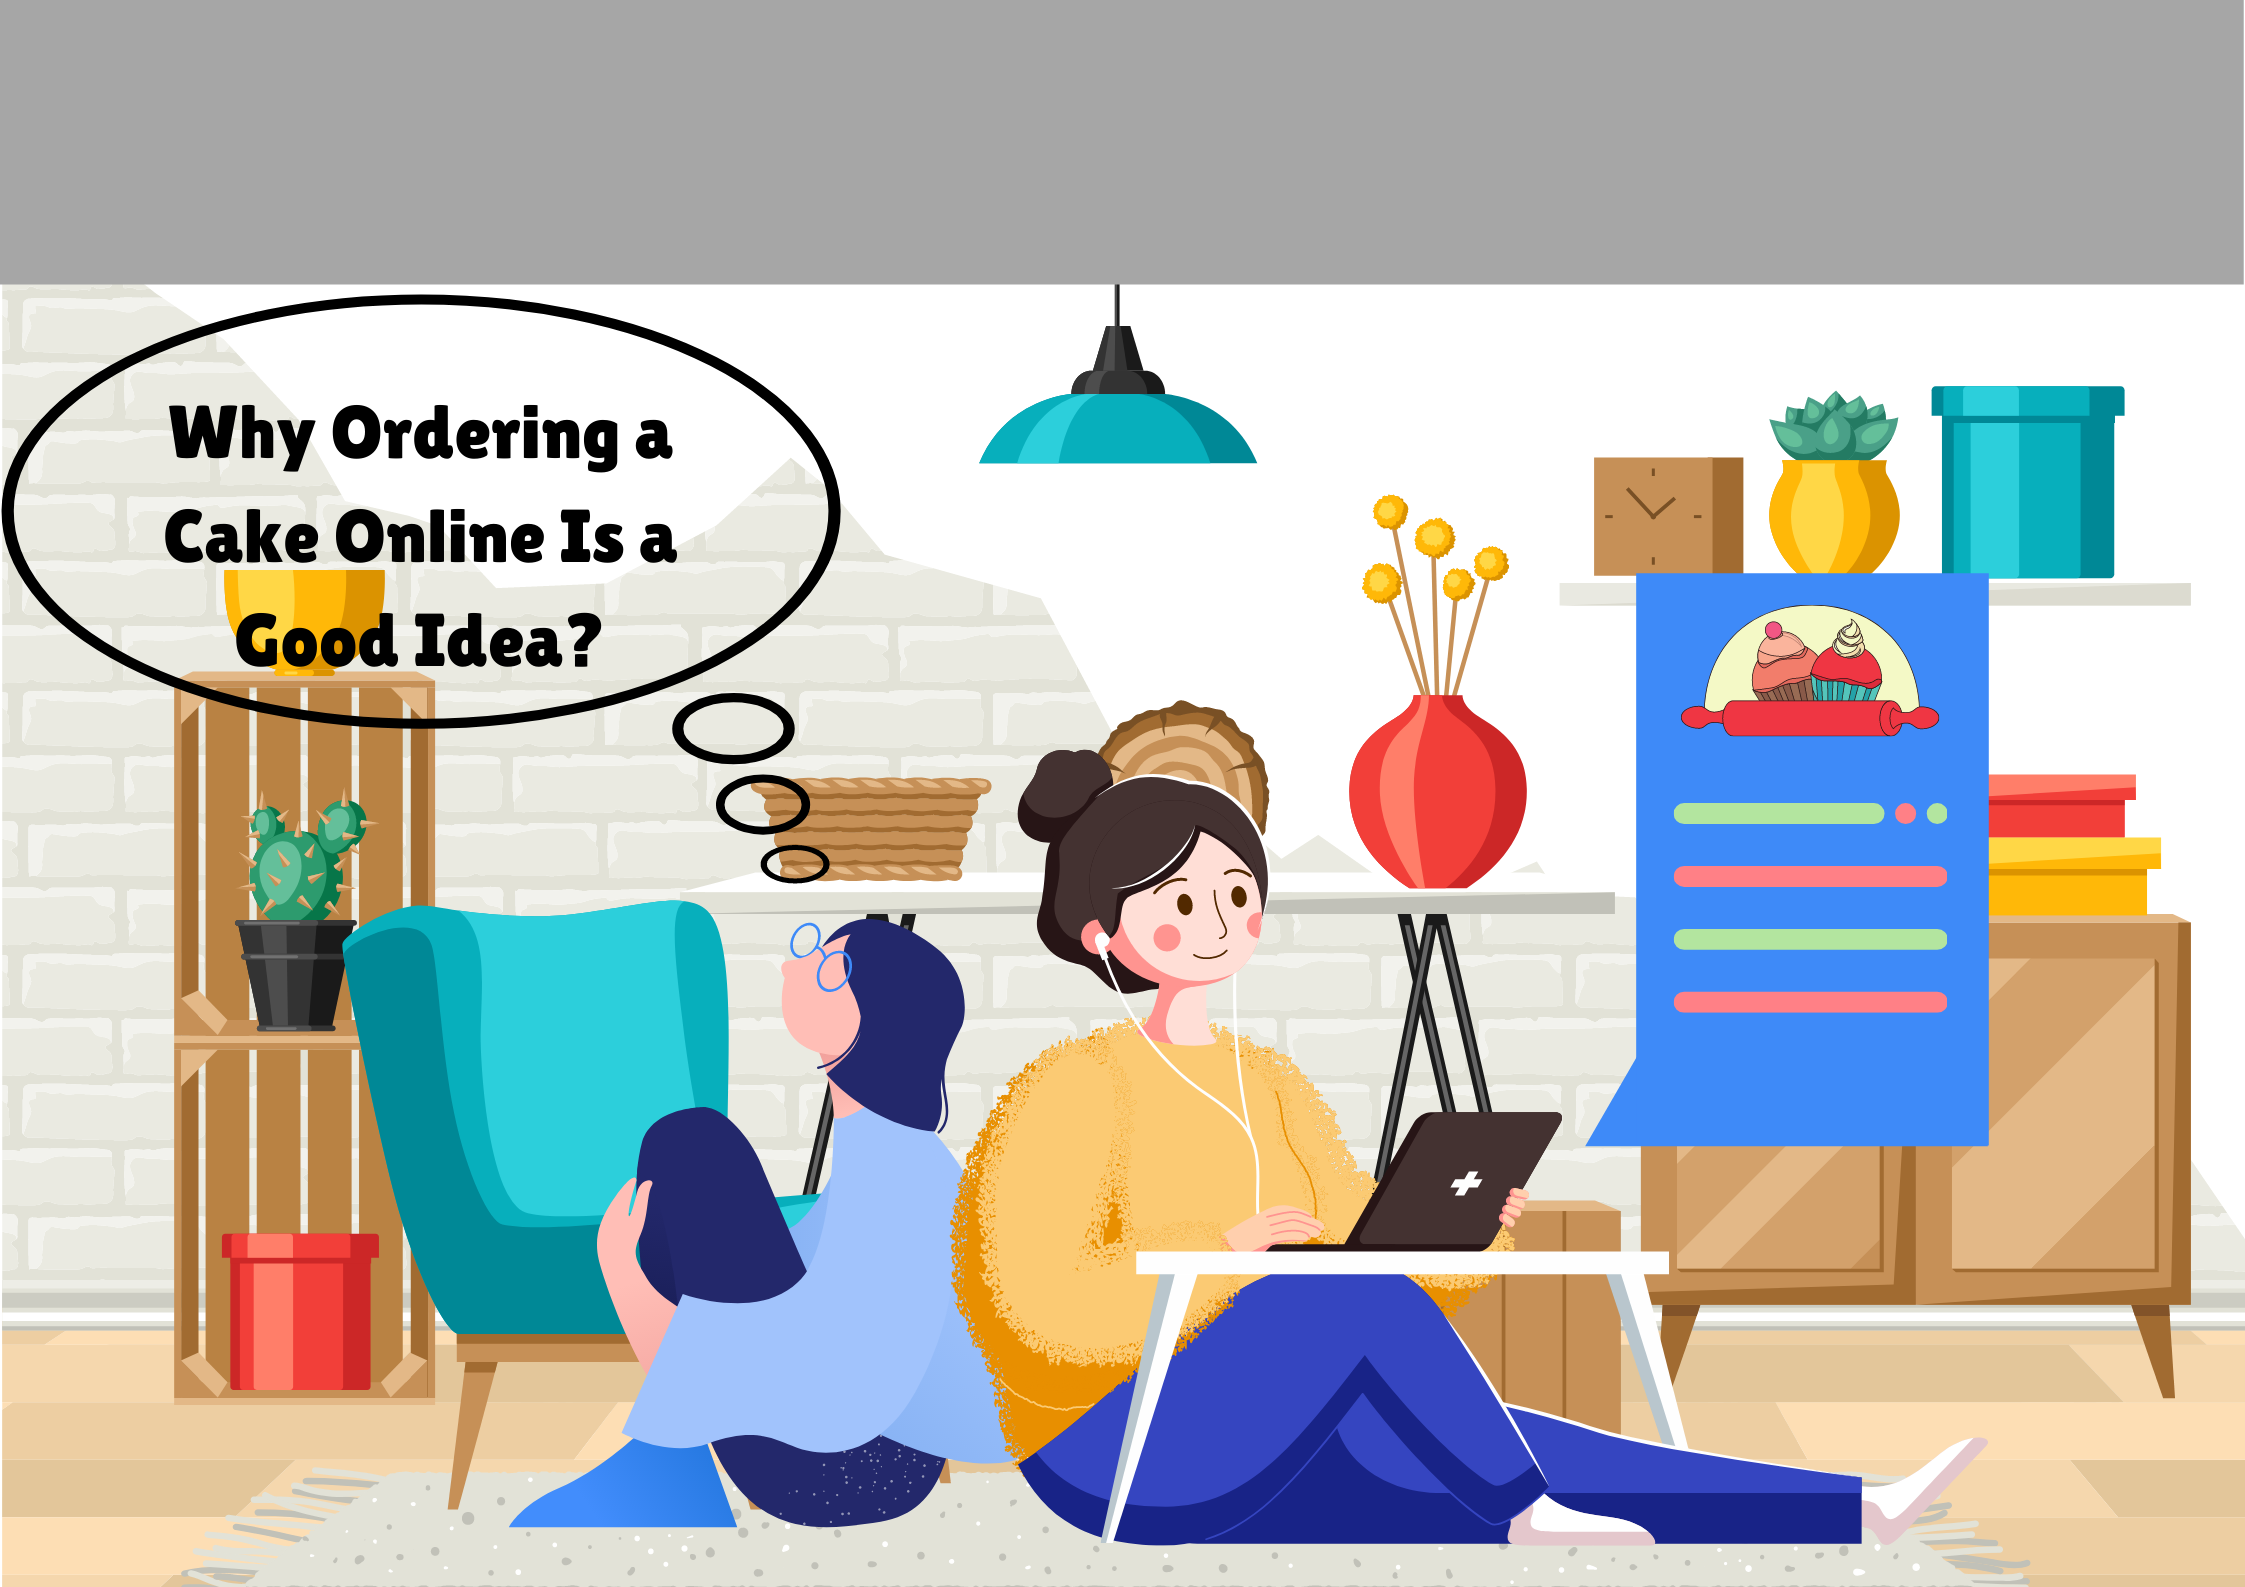 Why-Ordering-a-Cake-Online-Is-a-Good-Idea